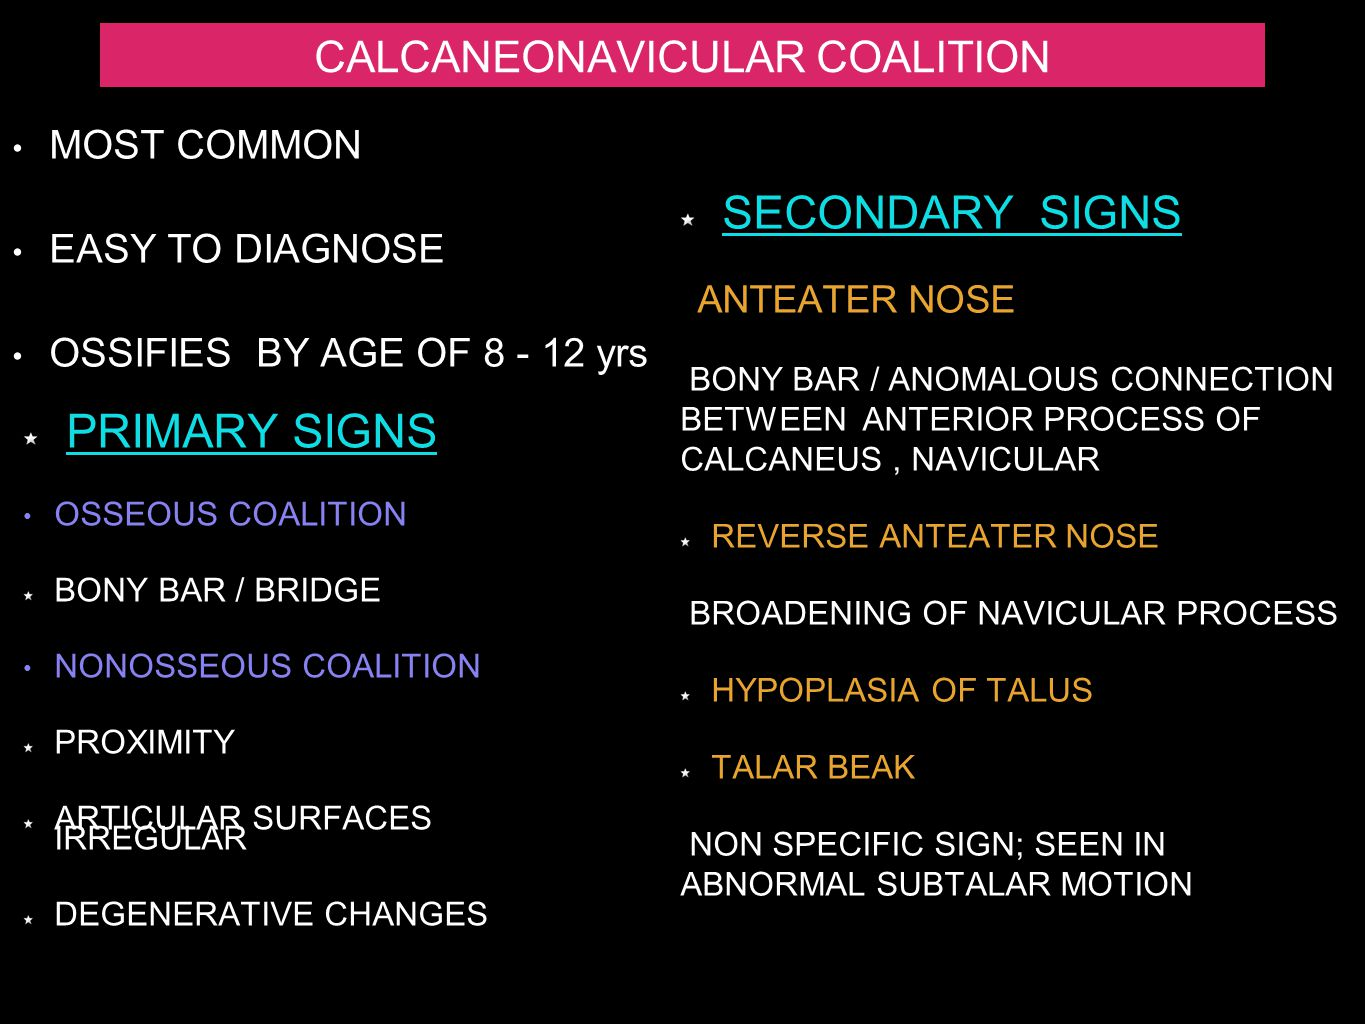 CALCANEONAVICULAR COALITION